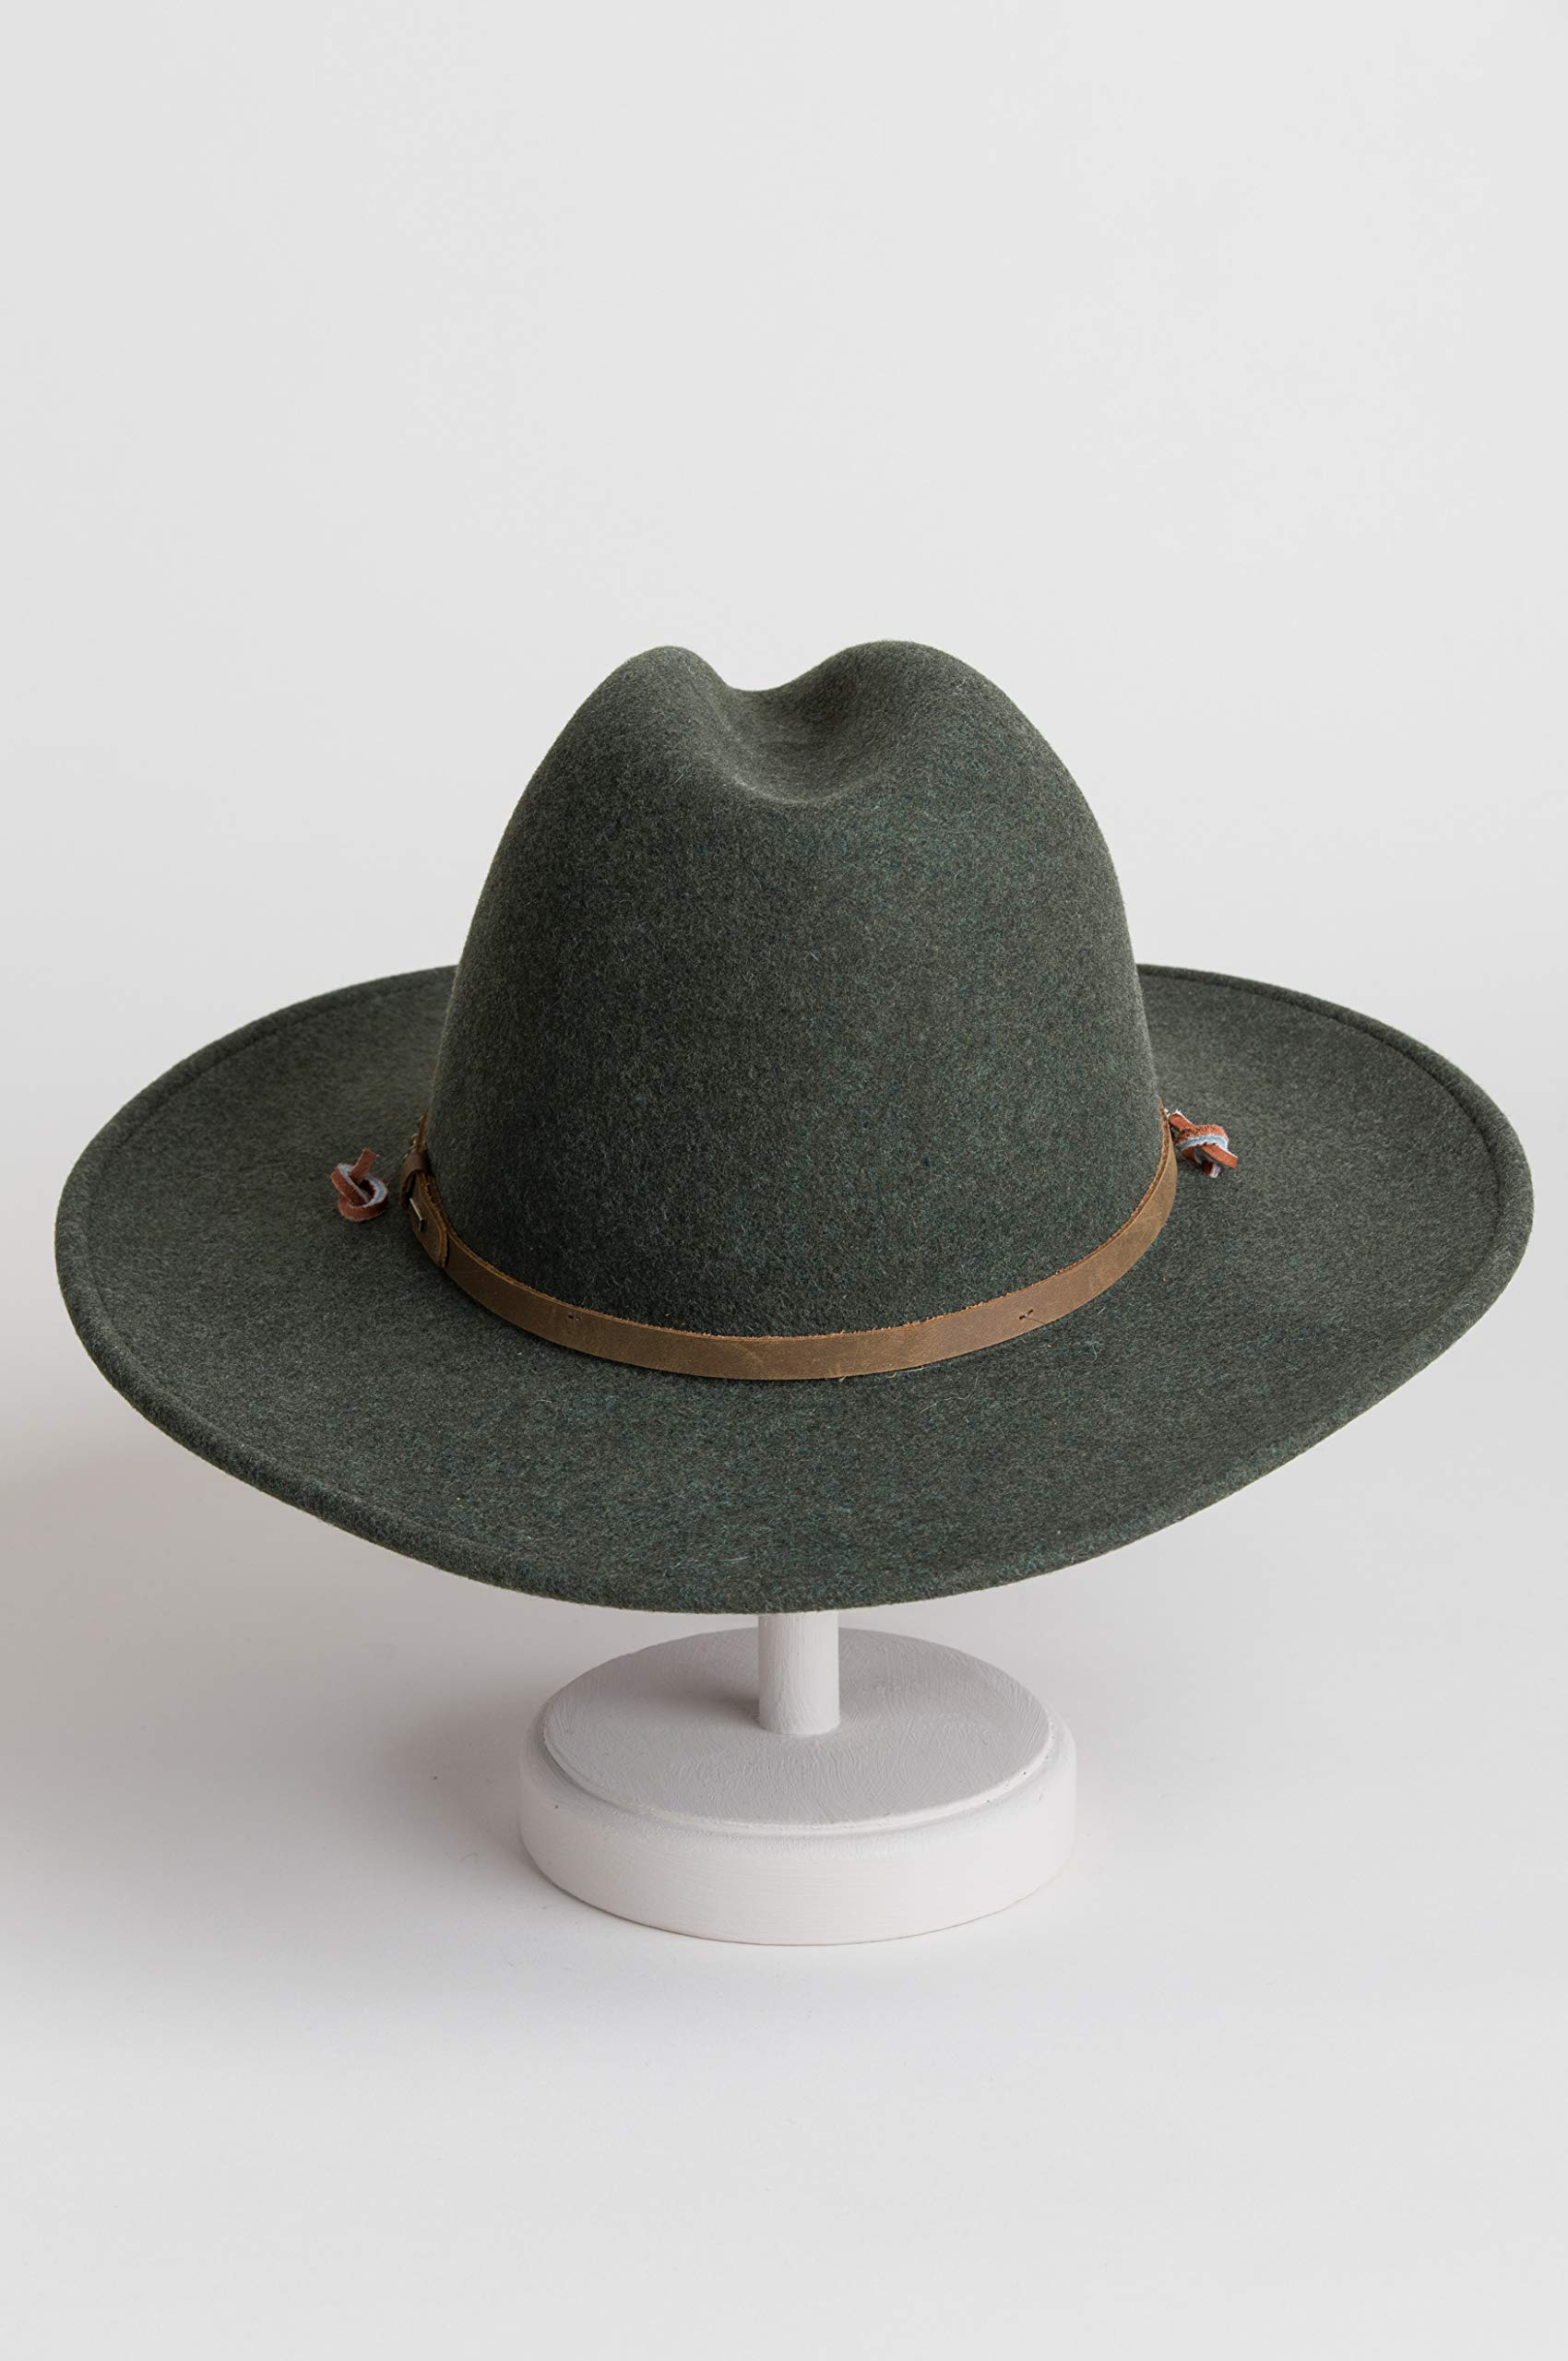 Men's Lonesome Trail Crushable Wool Stetson Hat, OLIVE MIX, Size SMALL by Stetson (Image #6)